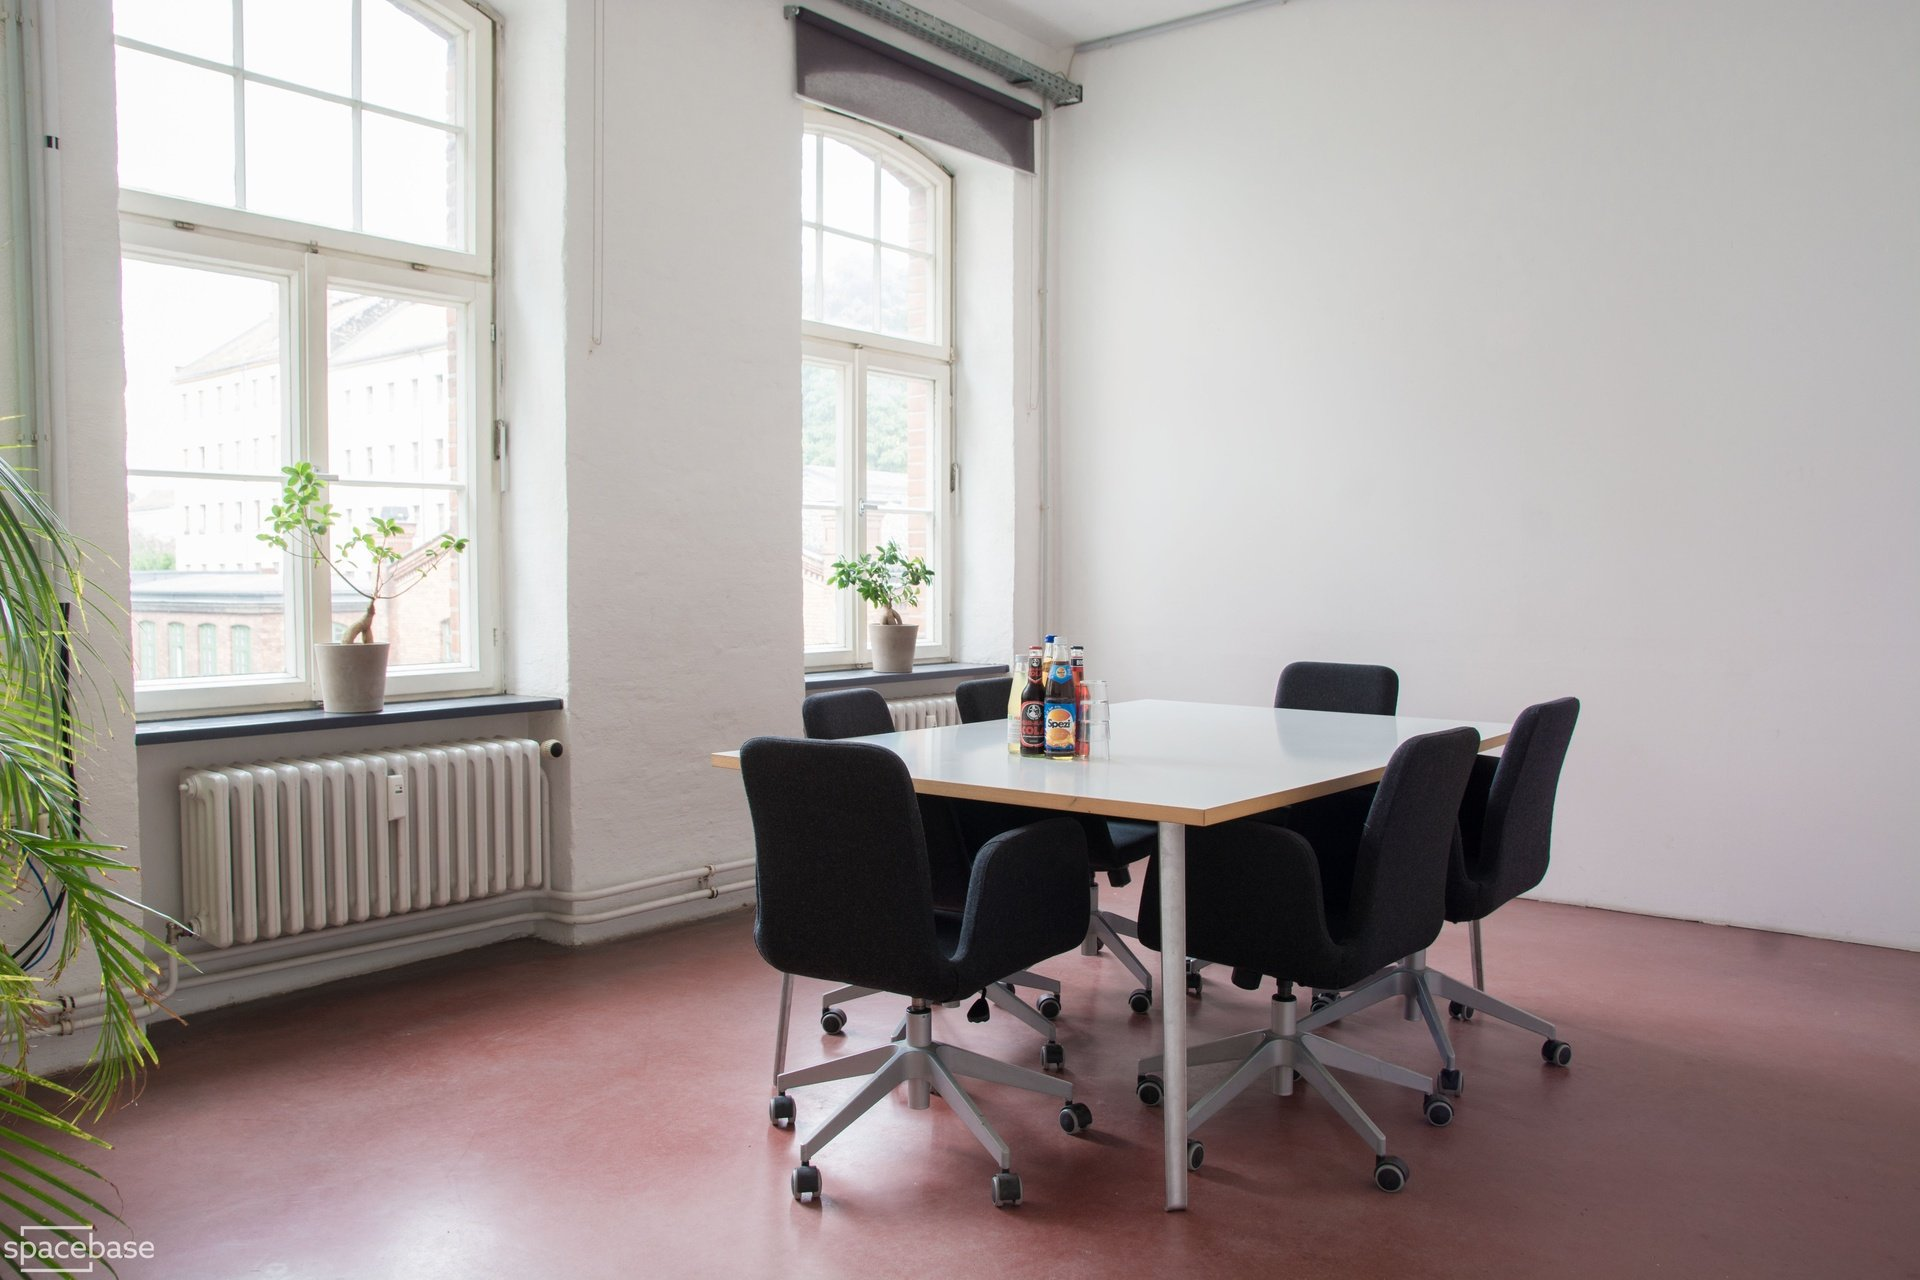 Berlin conference rooms Coworking space Welance image 0